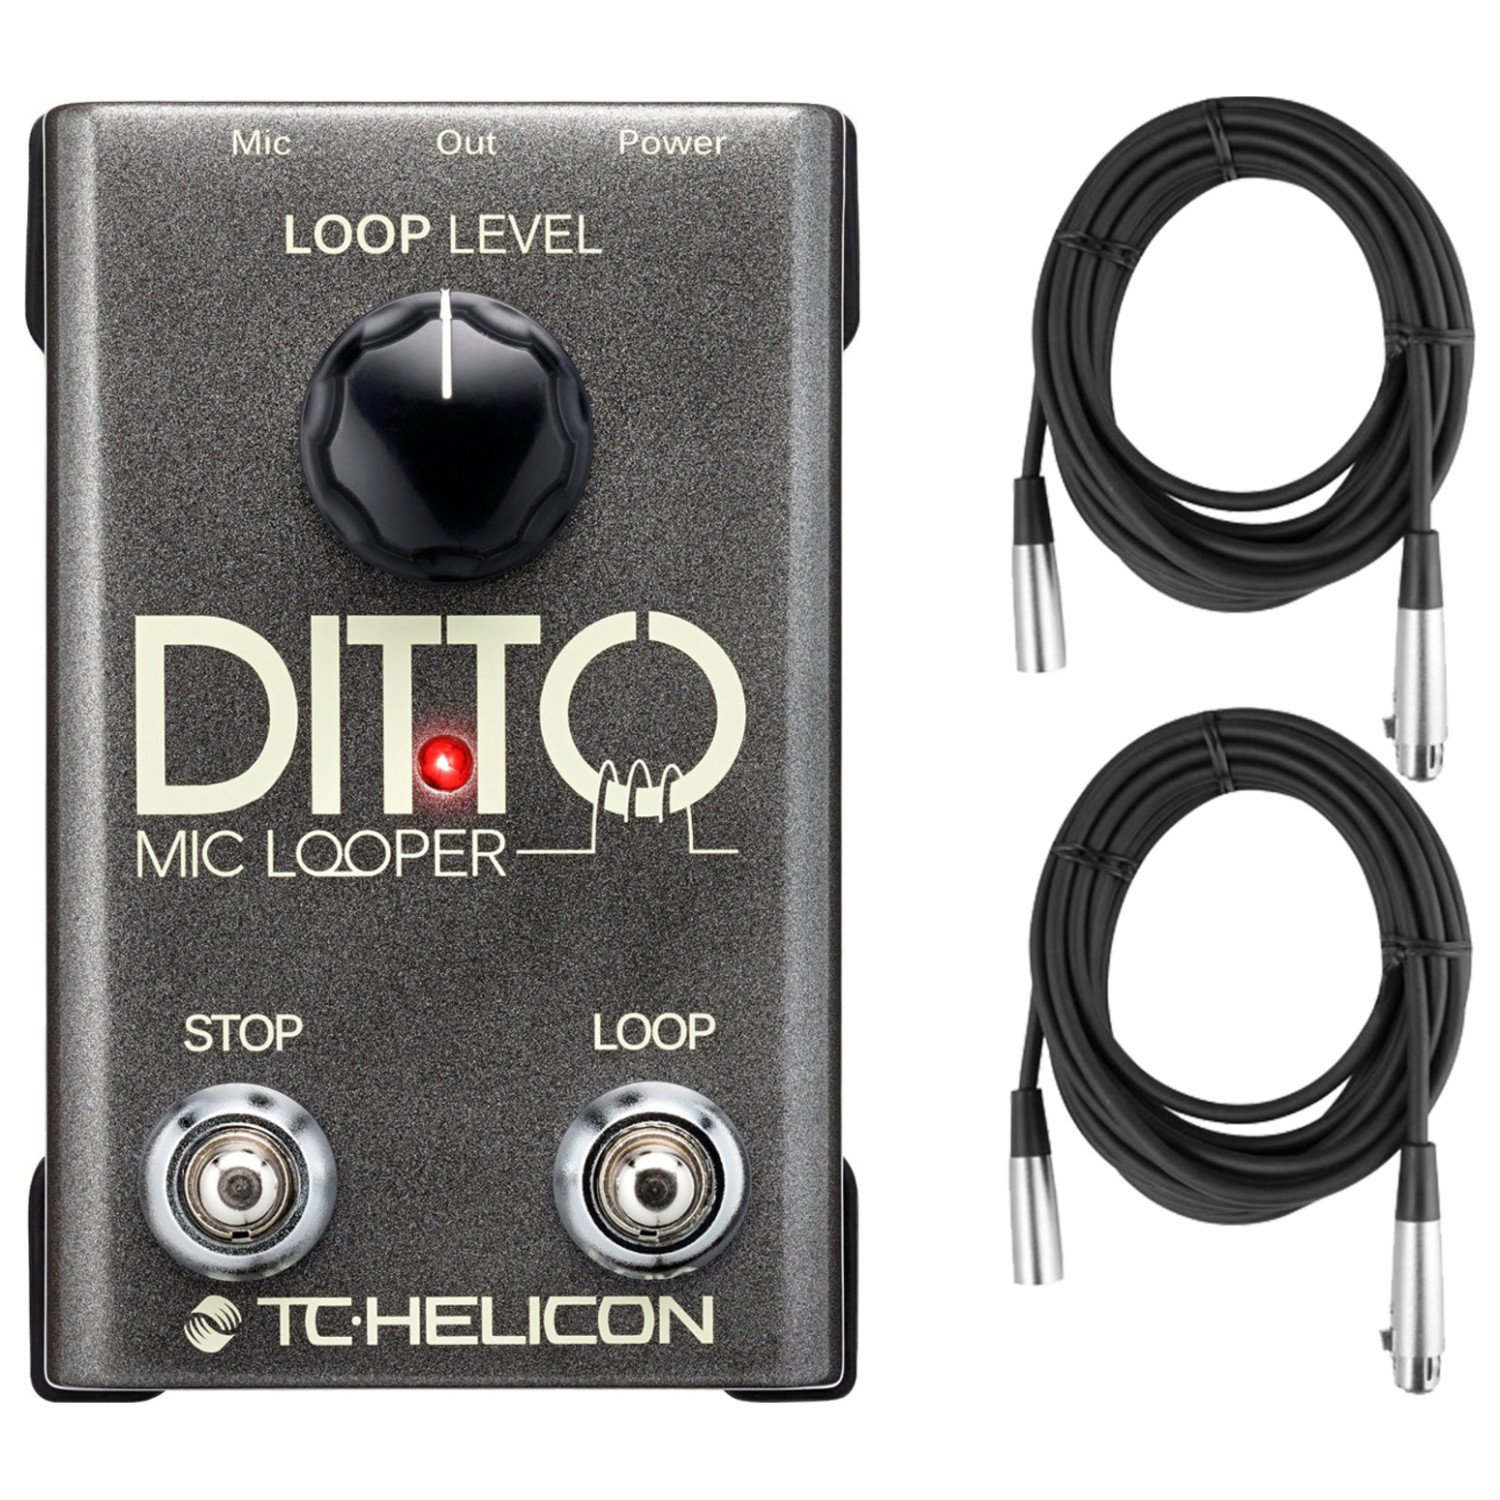 TC-Helicon 996365005 Ditto Mic Looper Pedal for Electric Guitar with XLR Micrphone Cables Unknown 996365005 BUNDLE